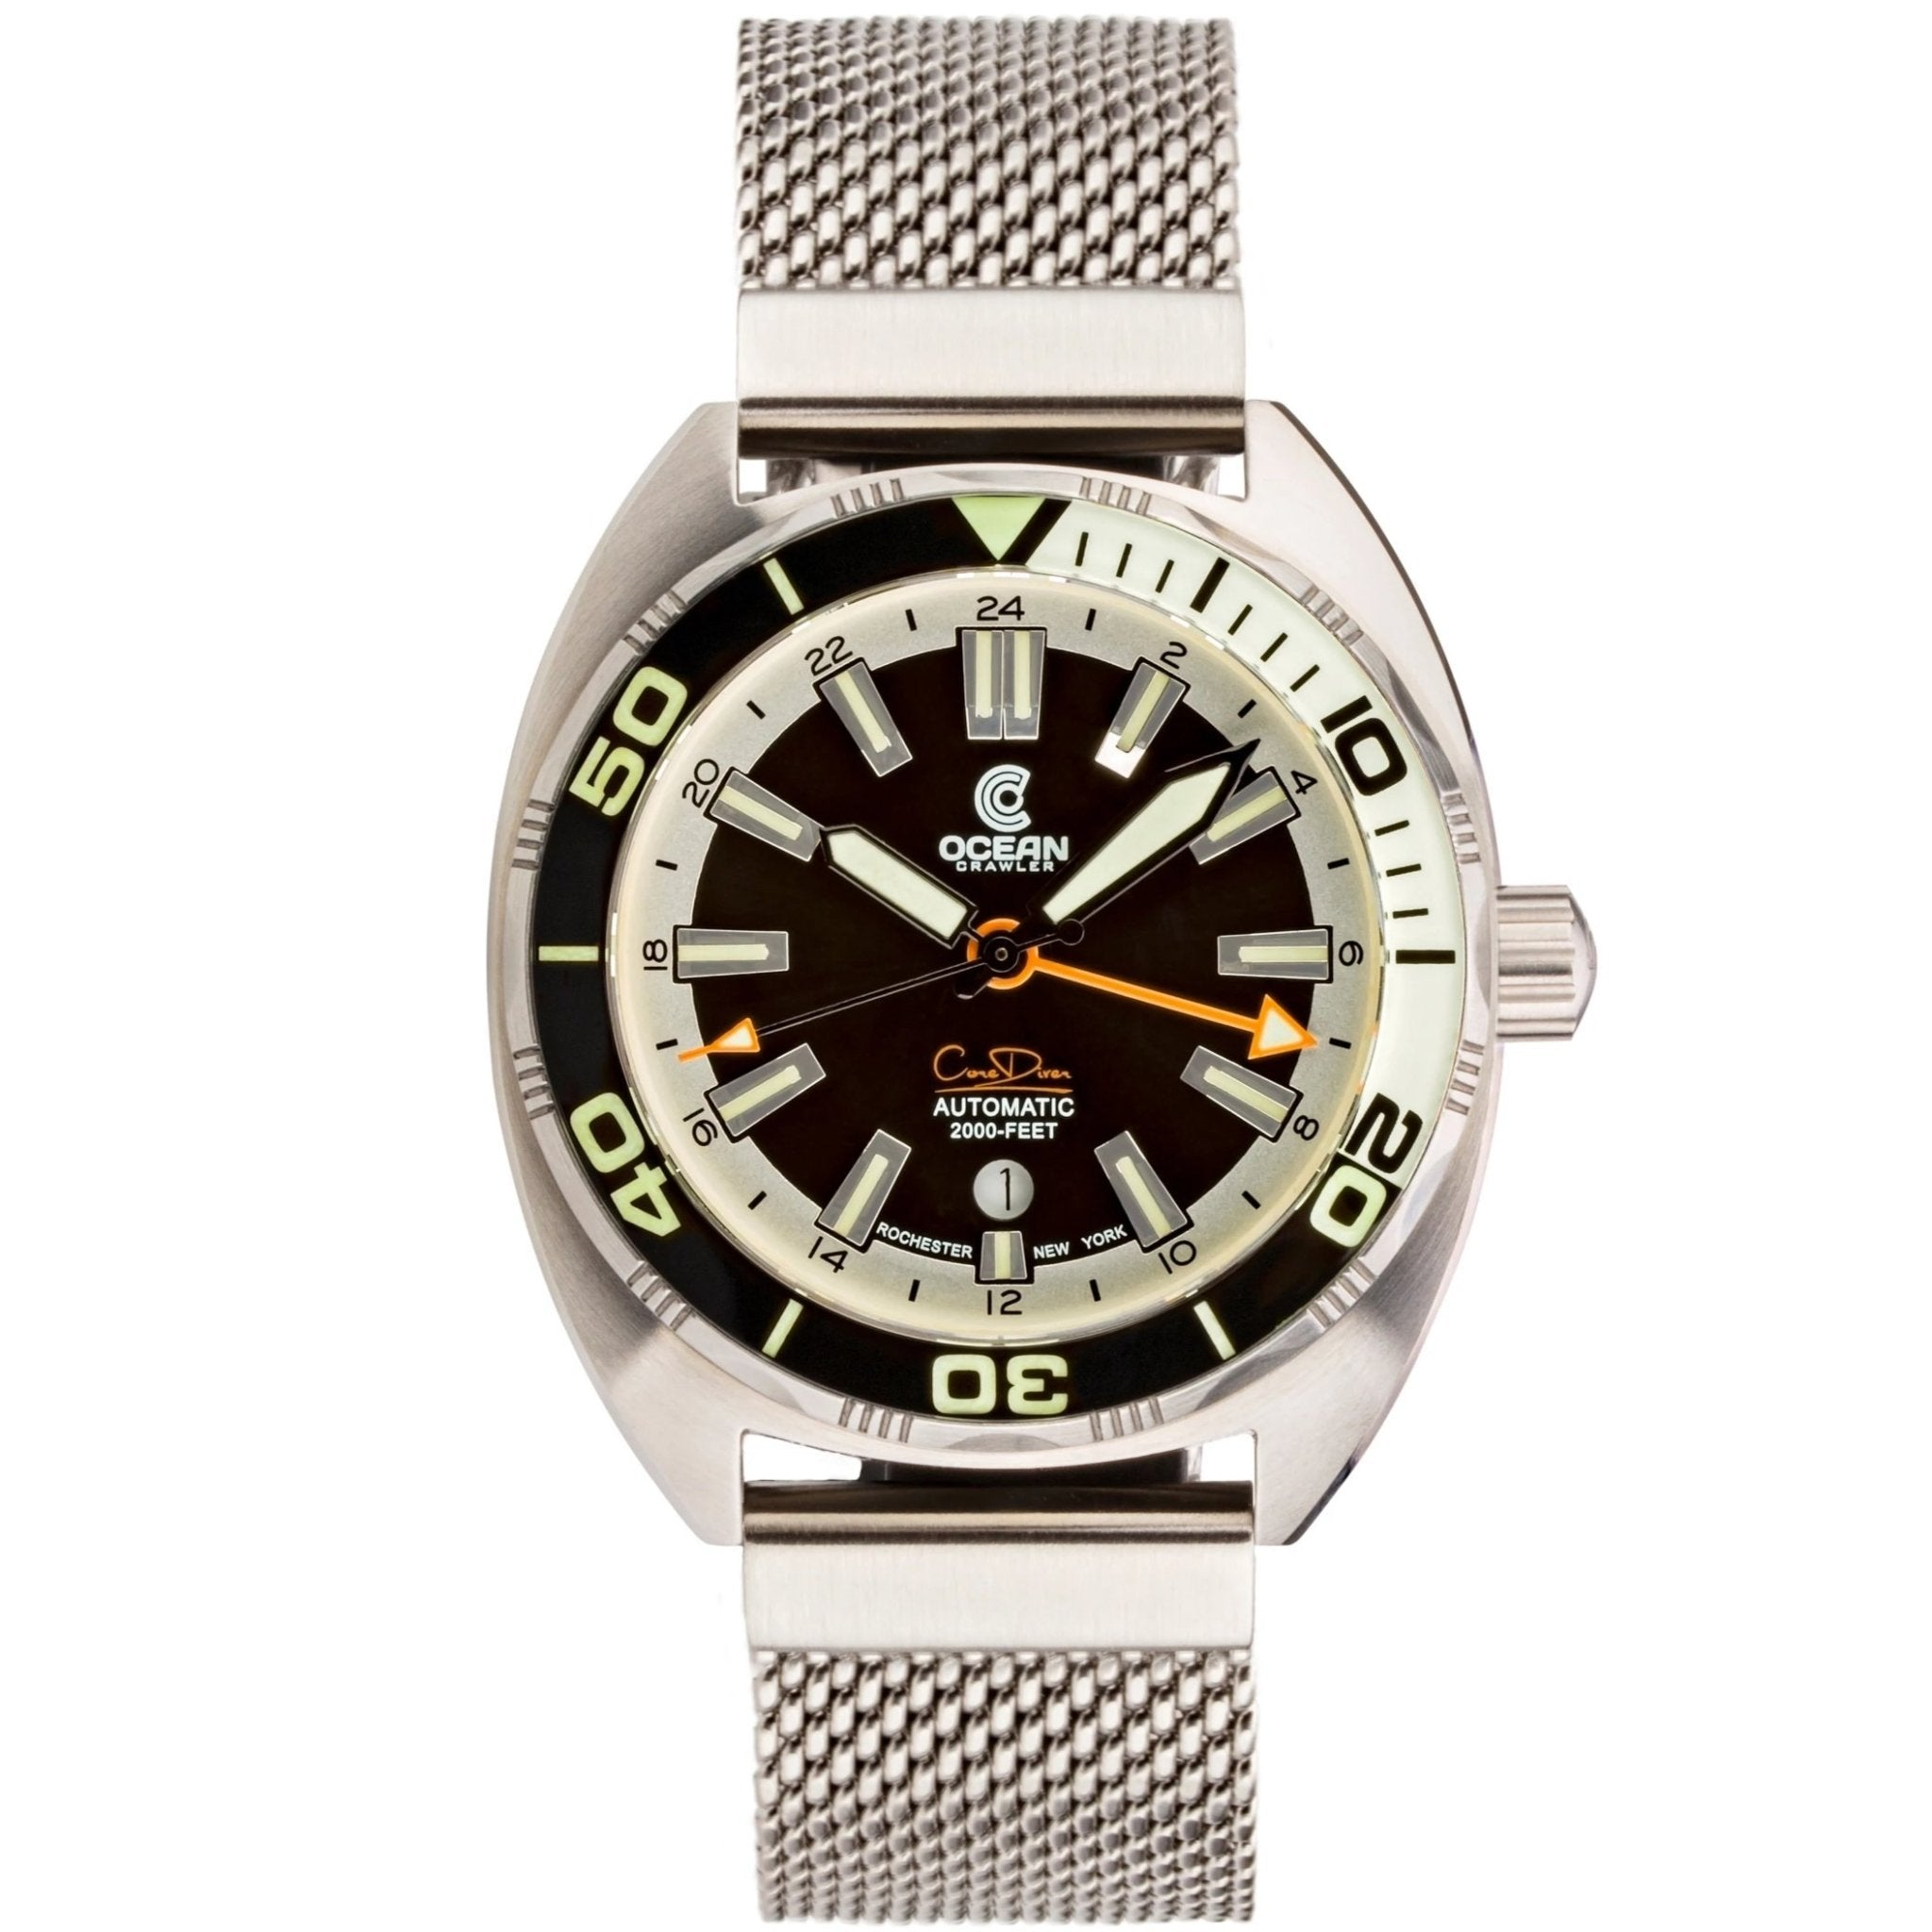 Ocean Crawler Core Diver GMT - Black/White - Ocean Crawler Watch Co.